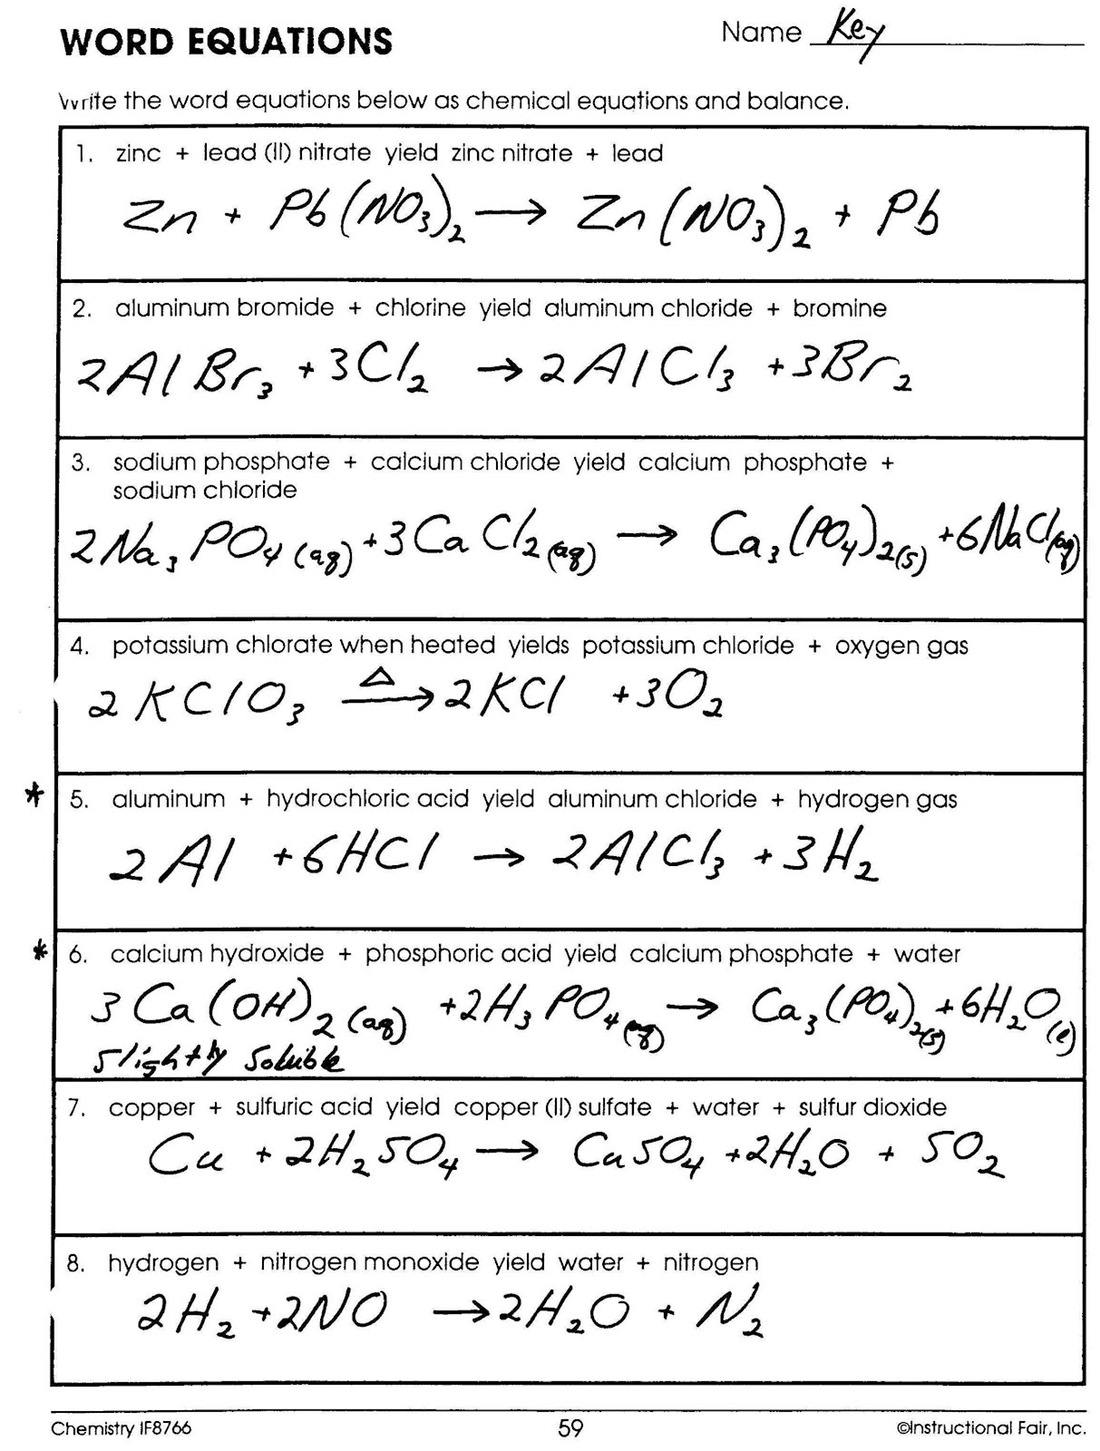 Chemistry Word Equations Worksheets Answers